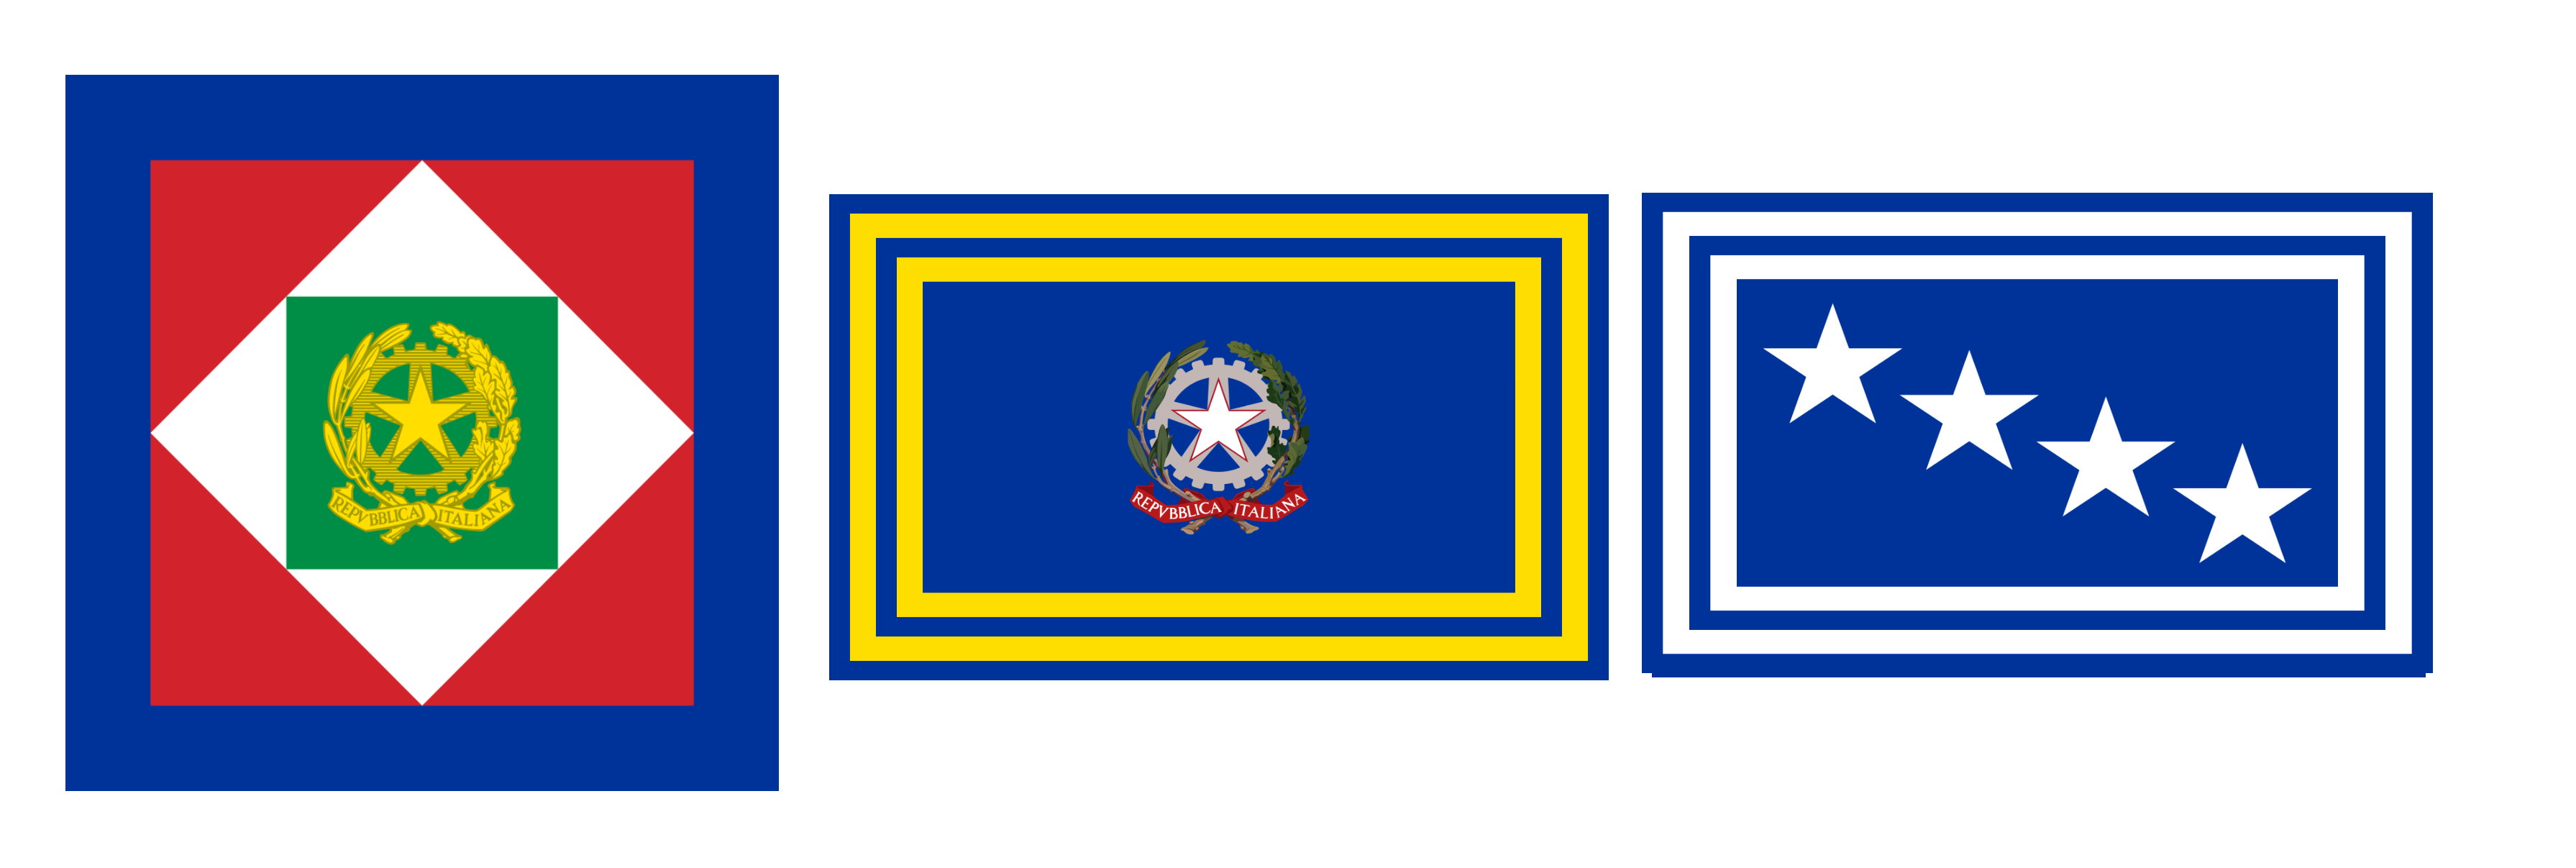 900px-Royal_Standard_of_Italy_18801946svgpng